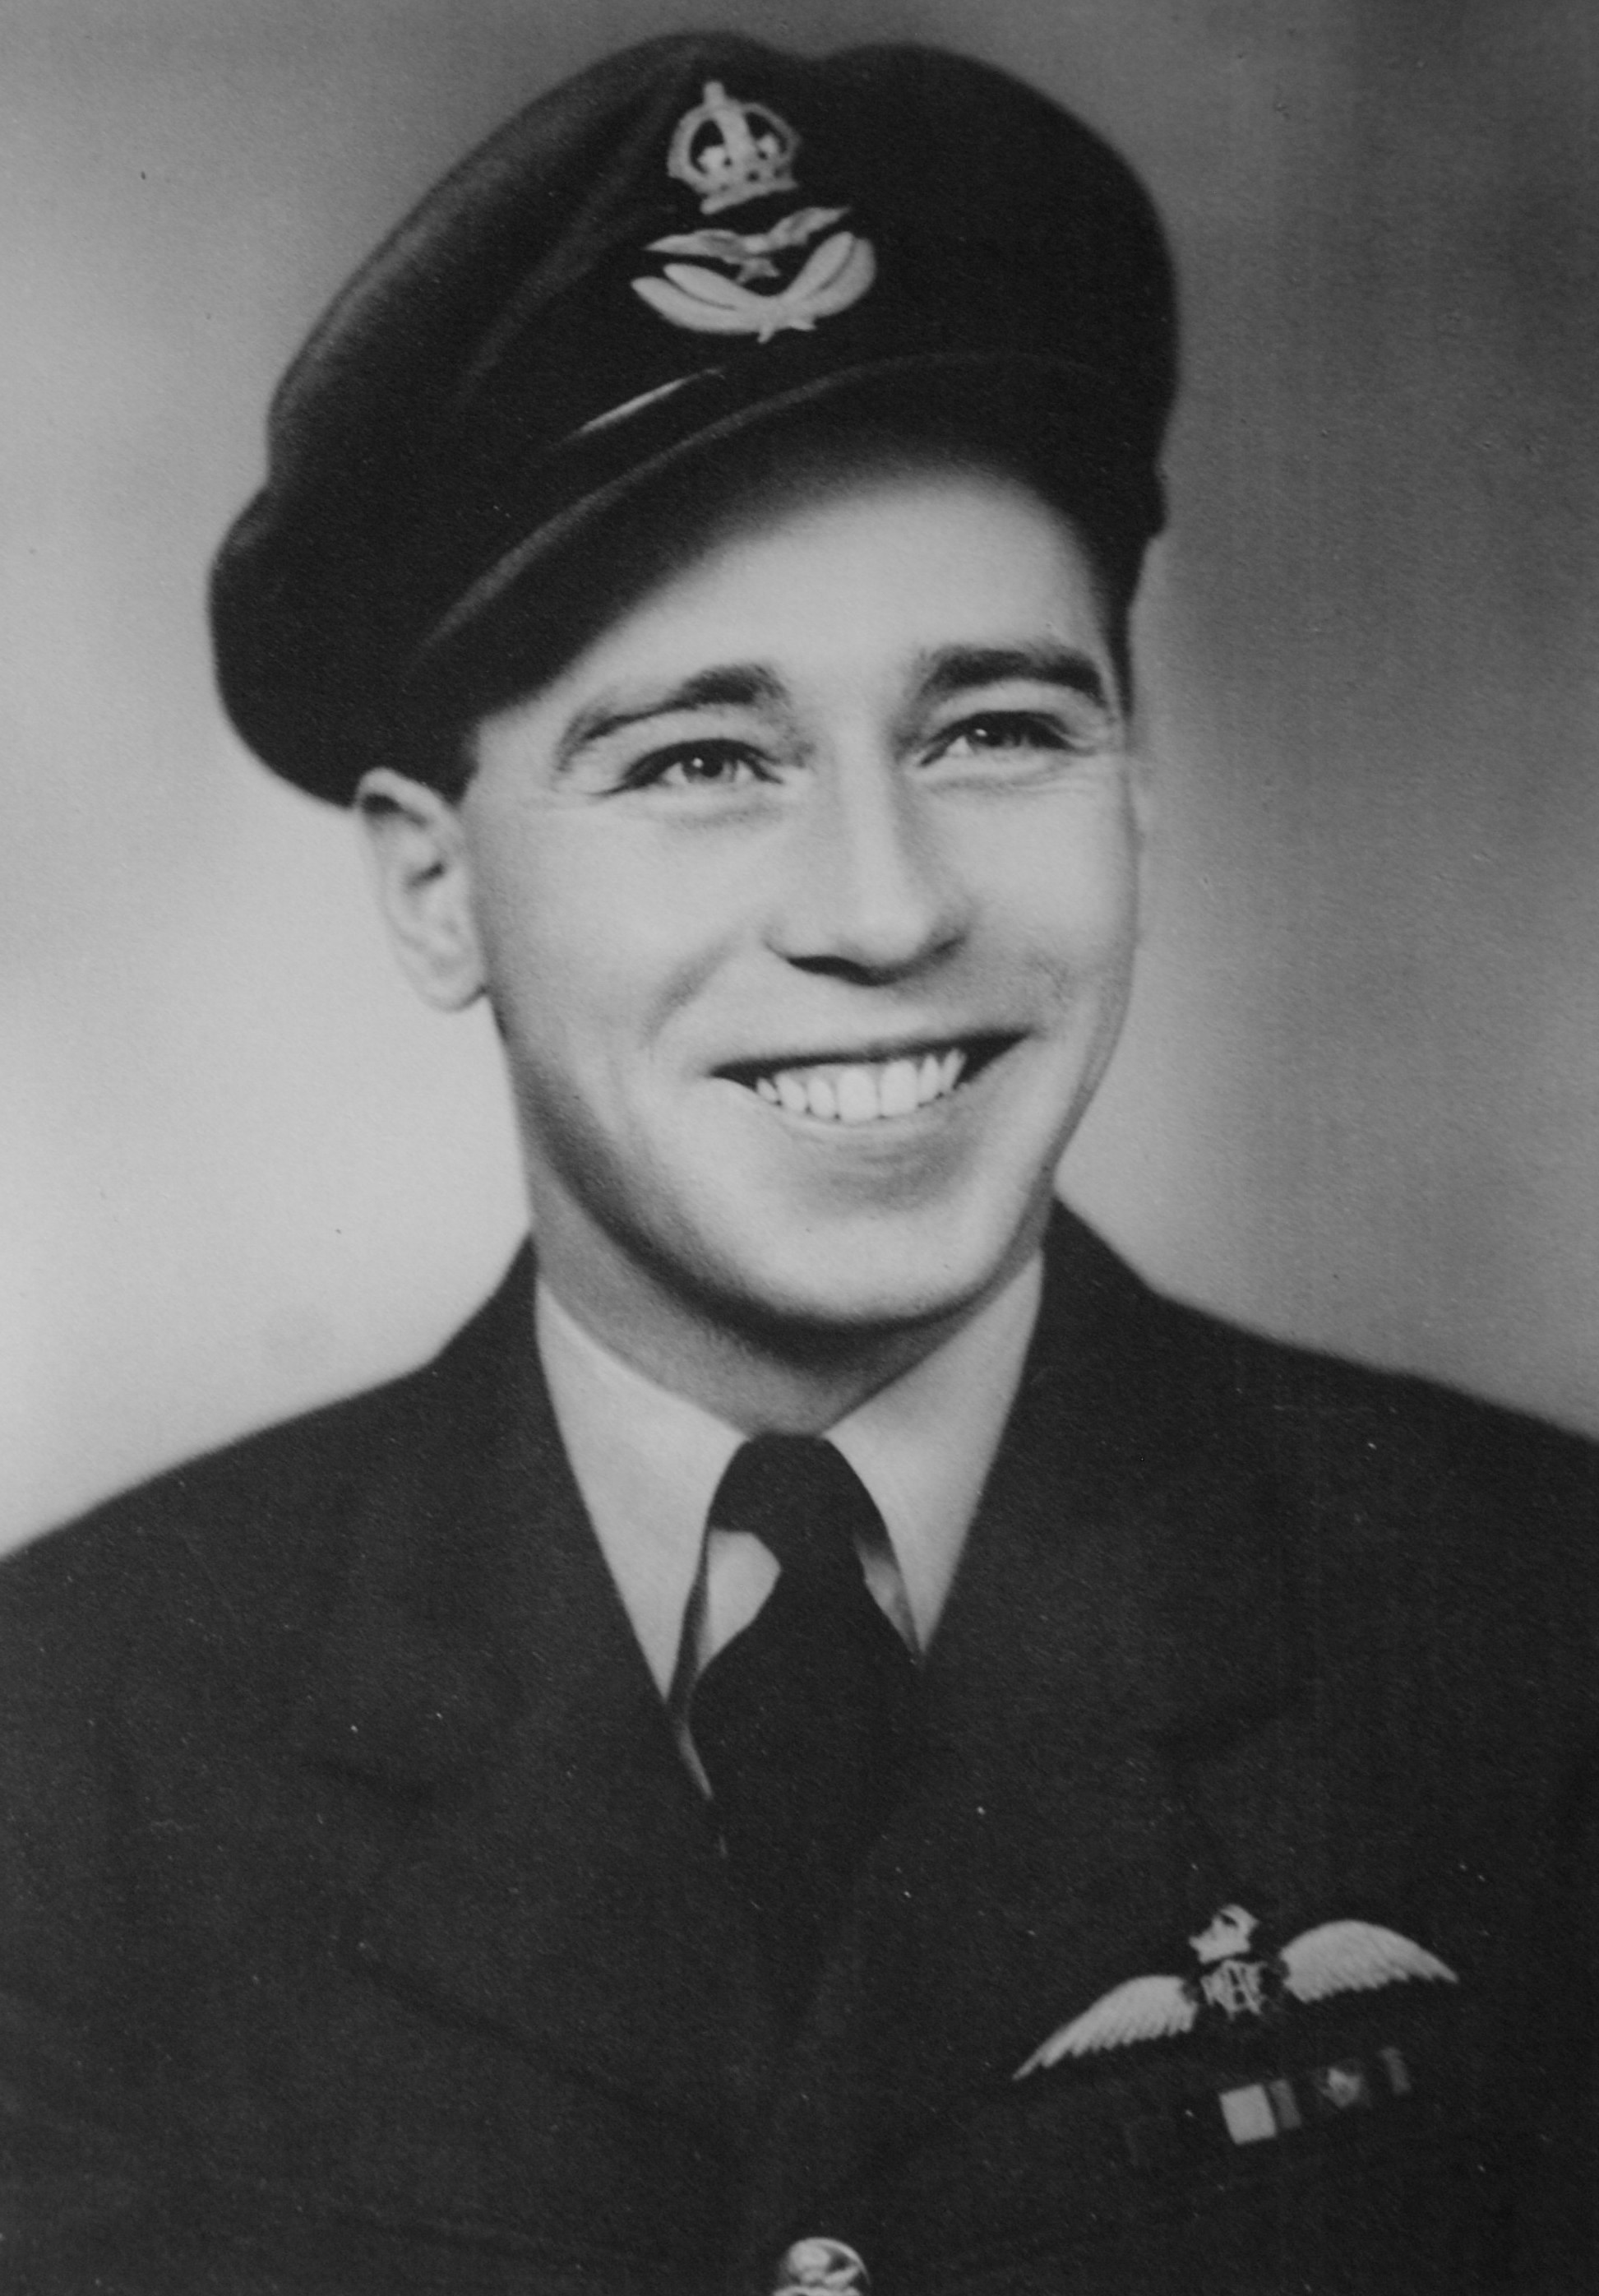 Flight Lieutenant John Colton, age 22. PHOTO: Courtesy John Colton.